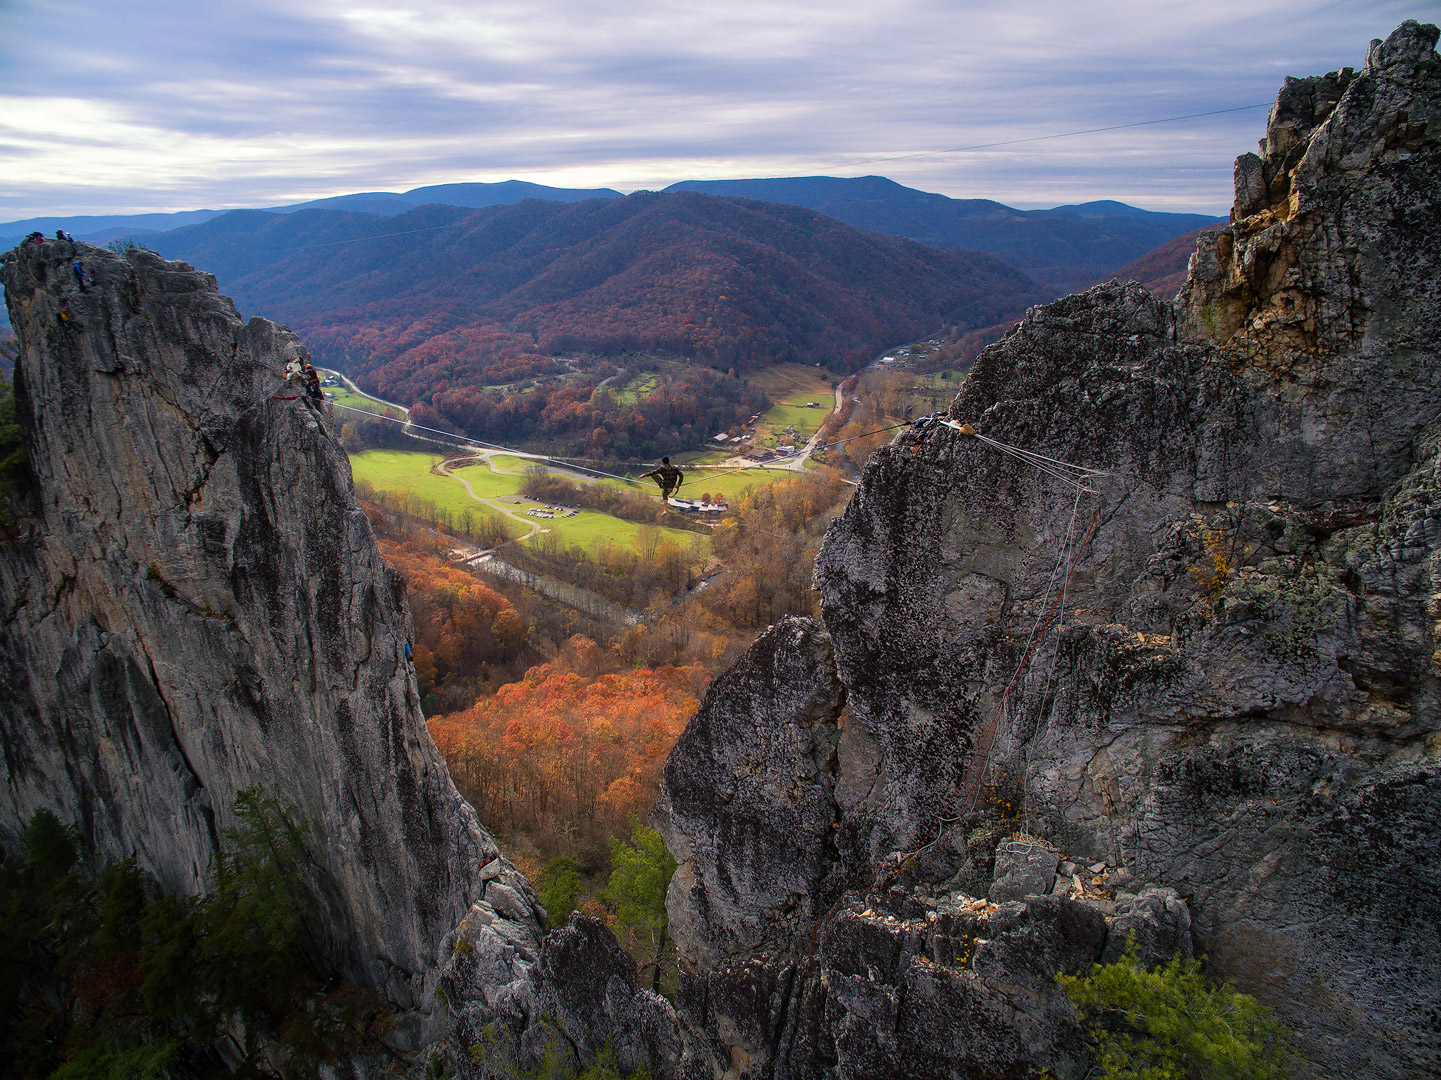 Living on the edge, Seneca Rocks, West Virginia, rock climbing, extreme sports, highline, slackline, aerial image, DJI Phantom 3, drone, photo